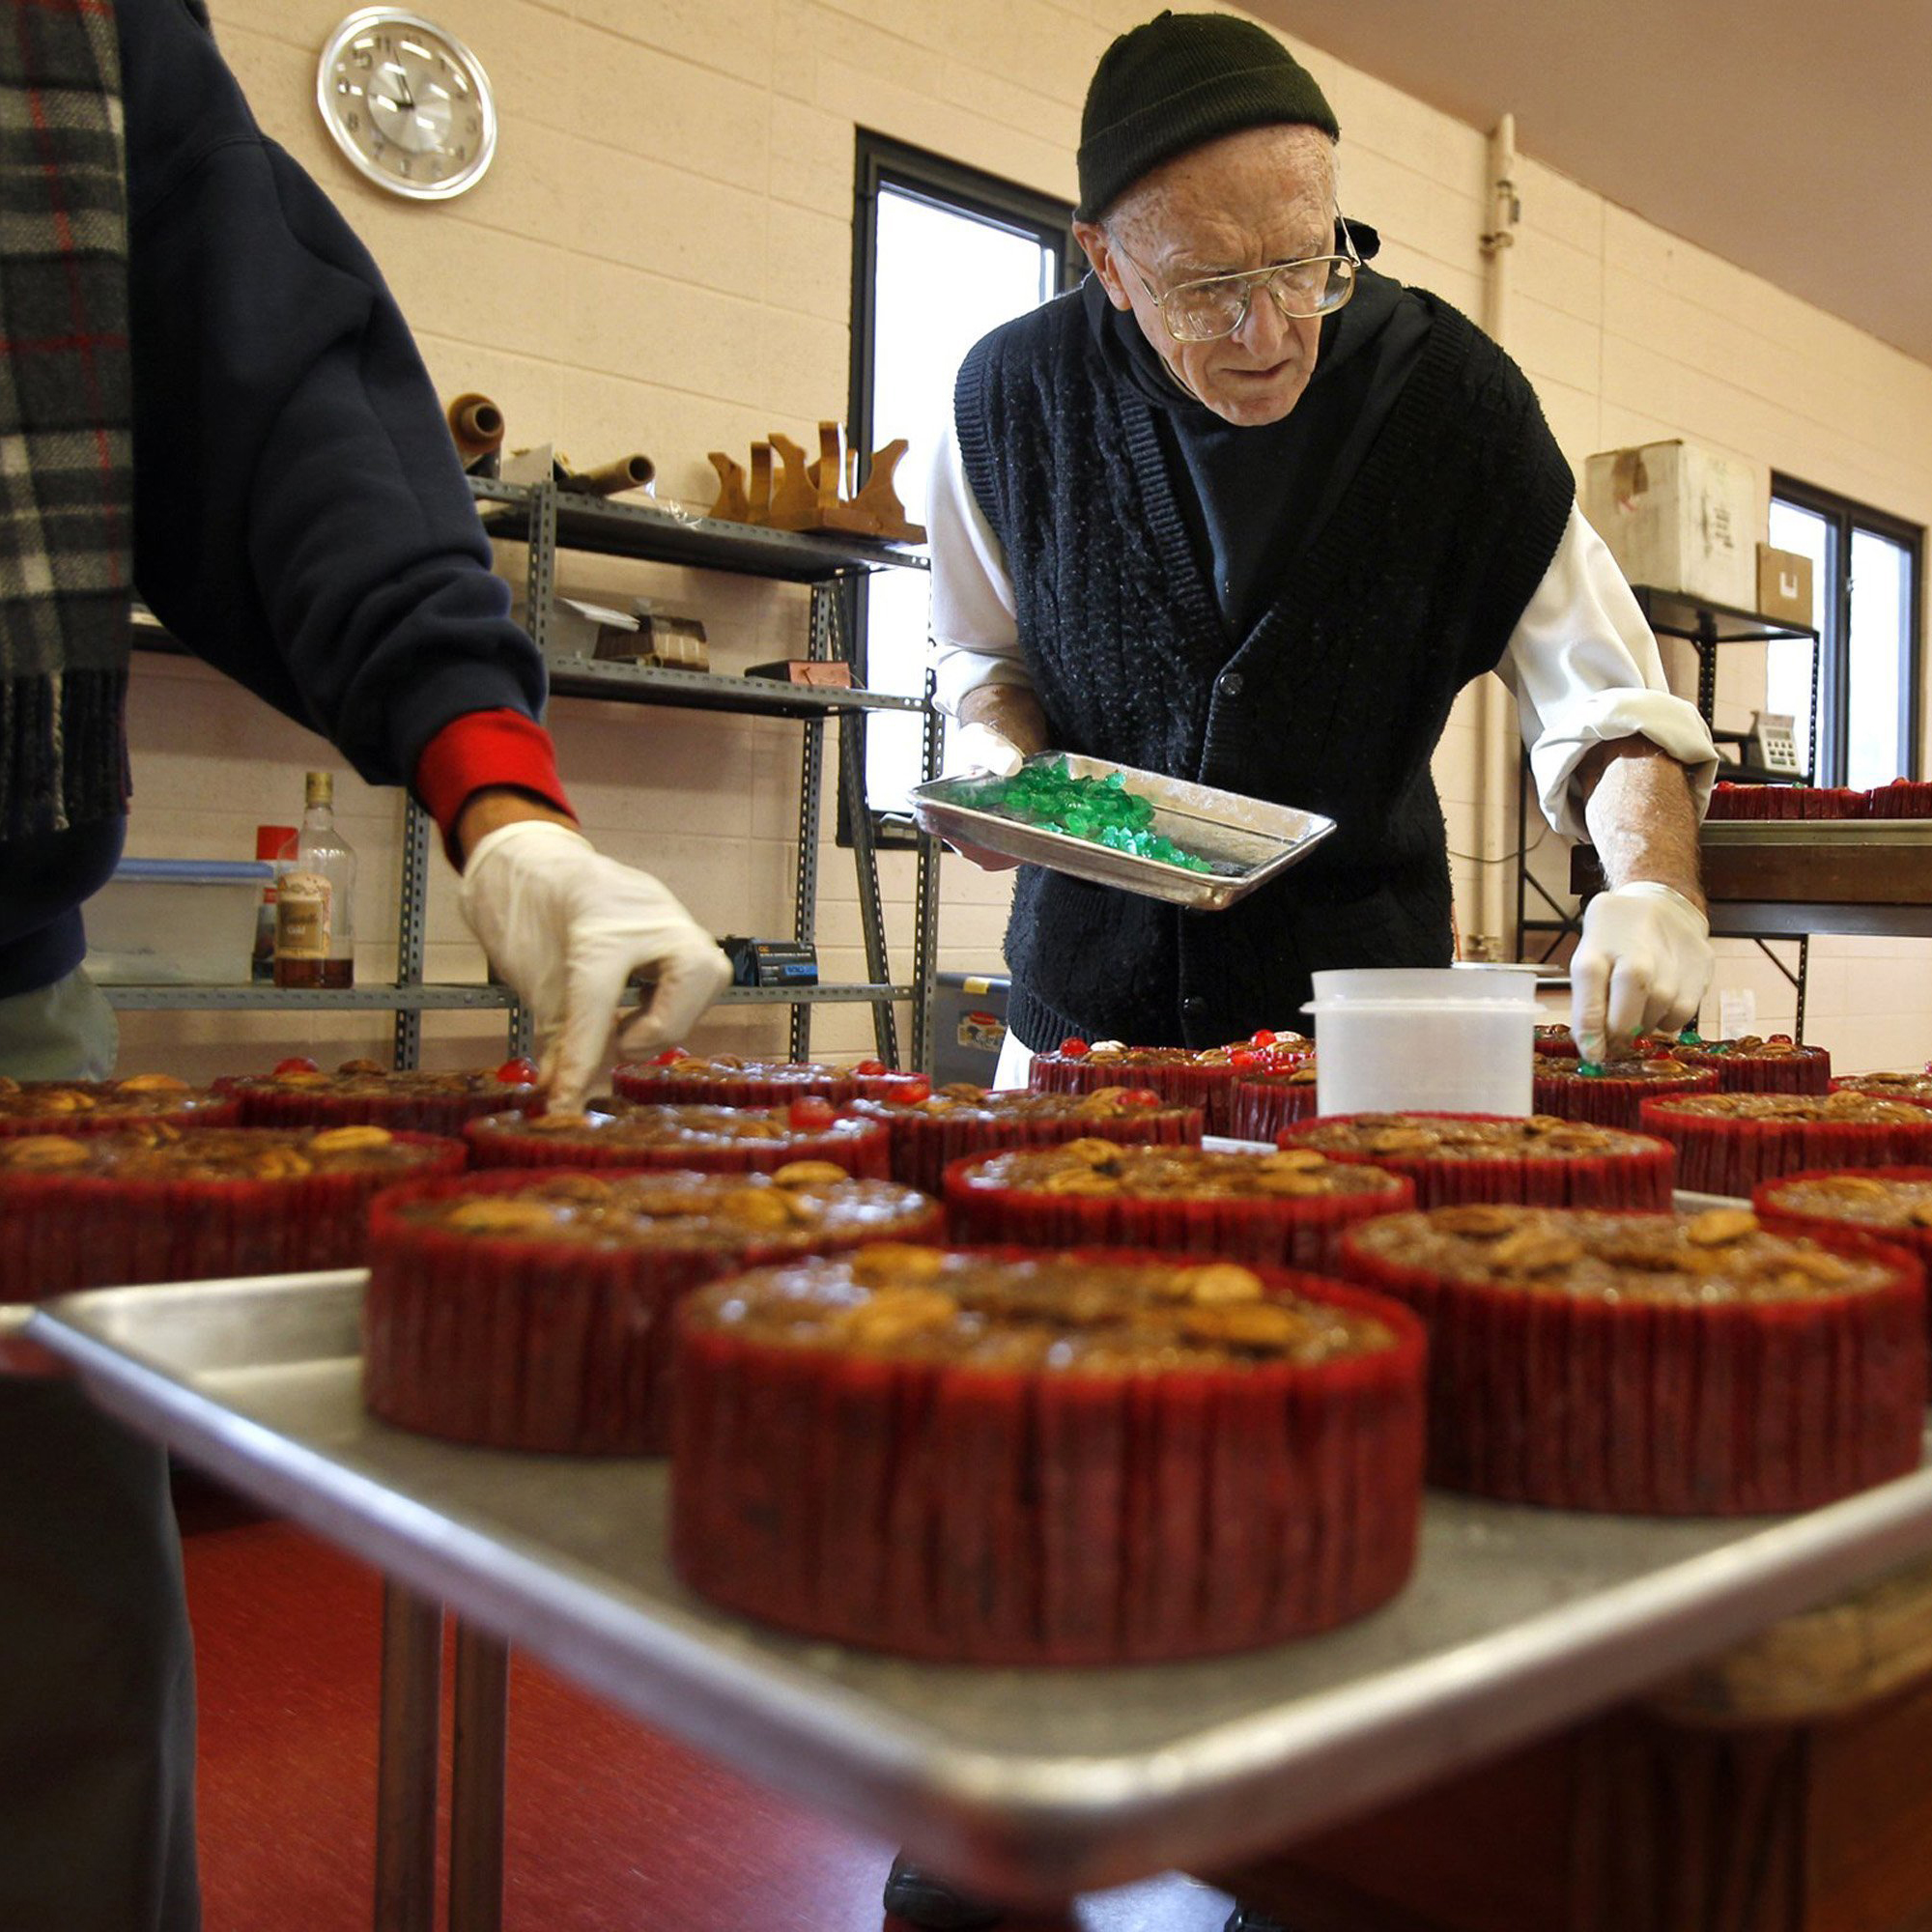 A monk prepares fruitcakes in Missouri.